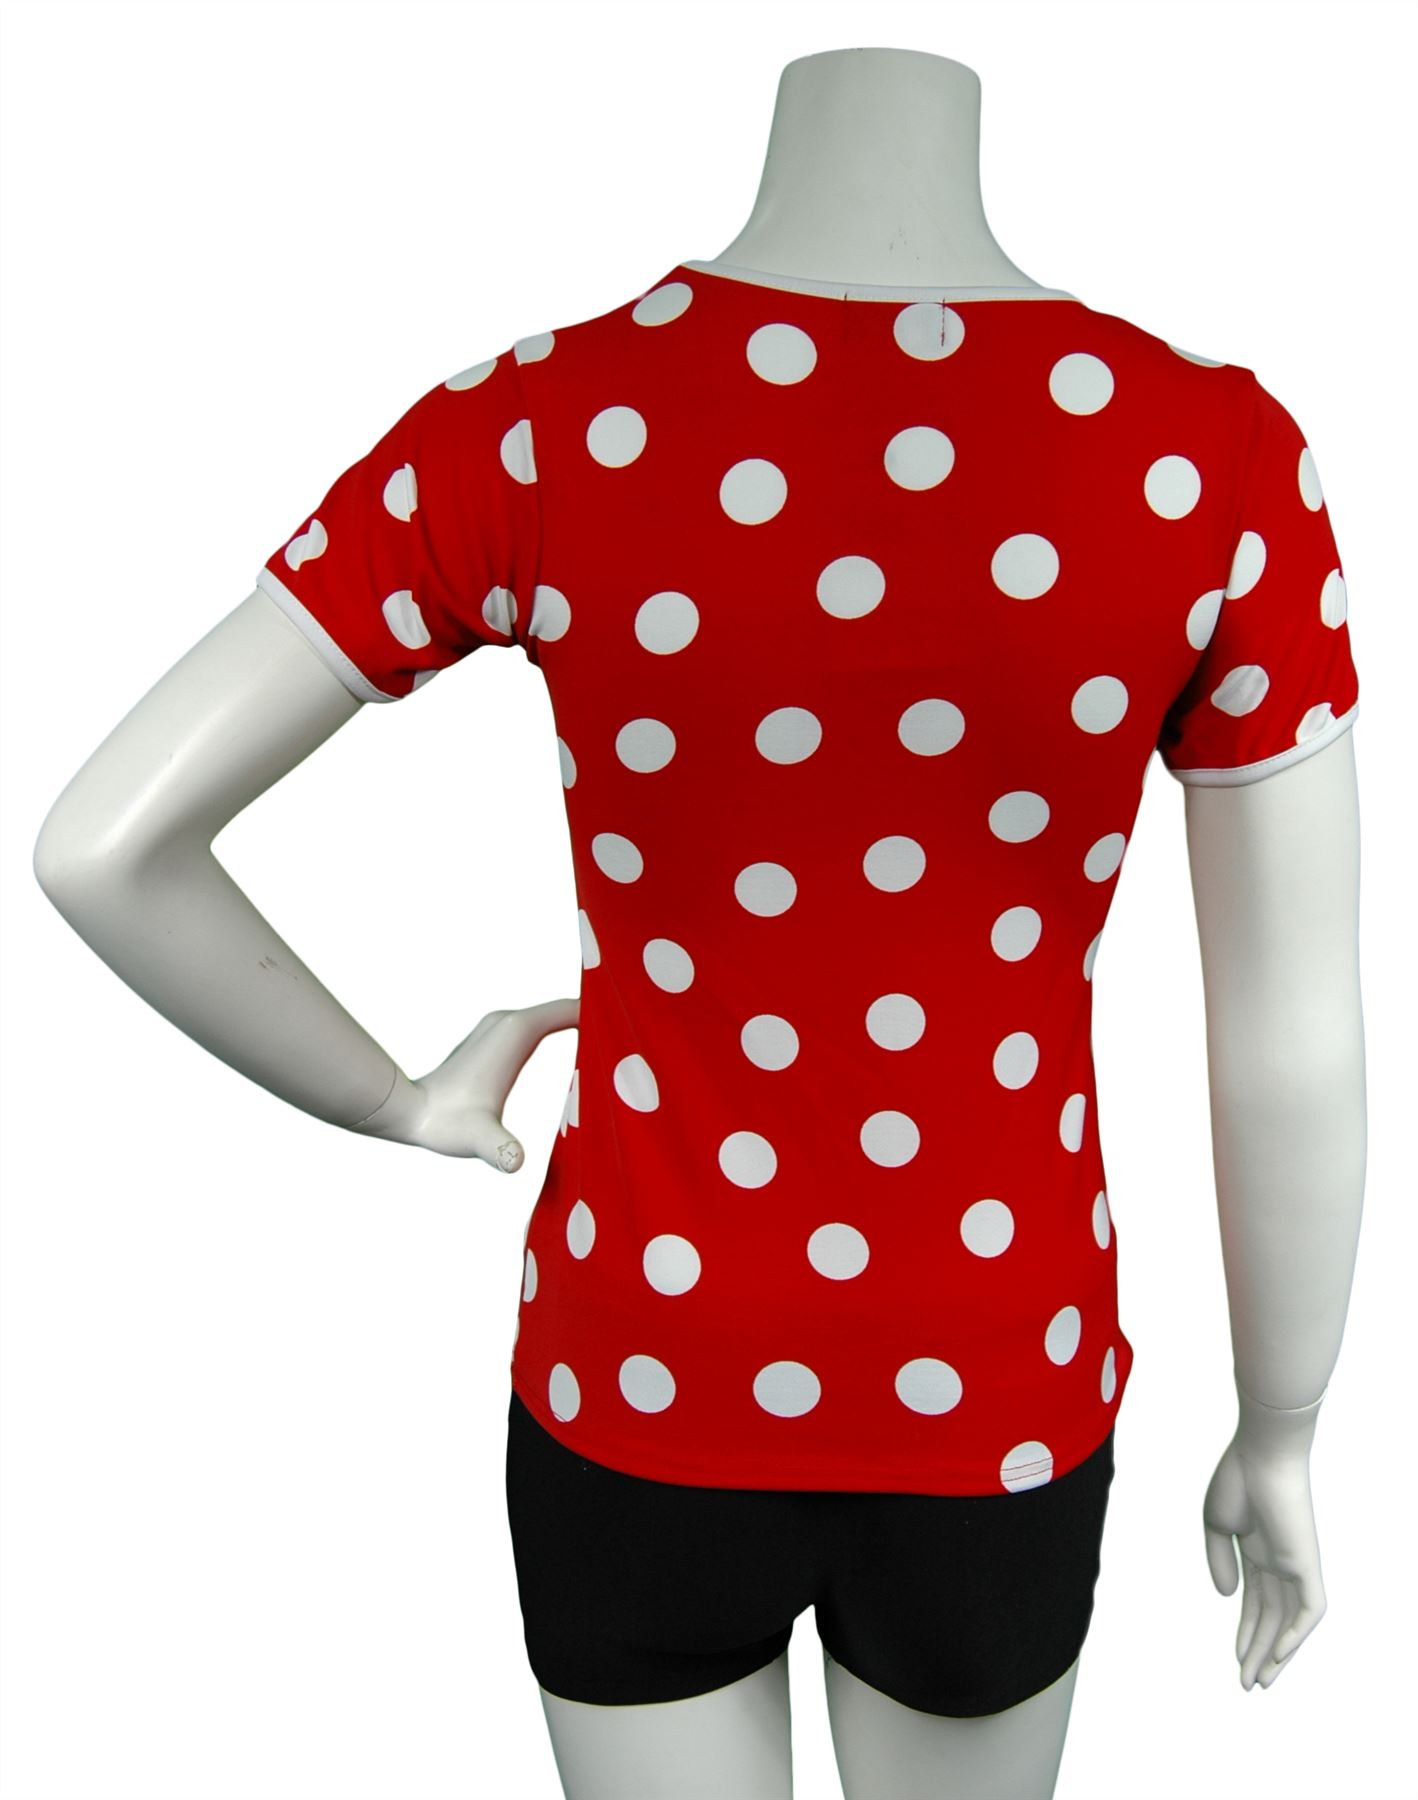 Free shipping CUSTOM Plus Size Polka Dot Empire Waist T-shirt in RED WINE 2X with only $ online and shop other cheap Plus Size Tops on sale at downloadsolutionspa5tr.gq Buy 1 Get 15% Off.